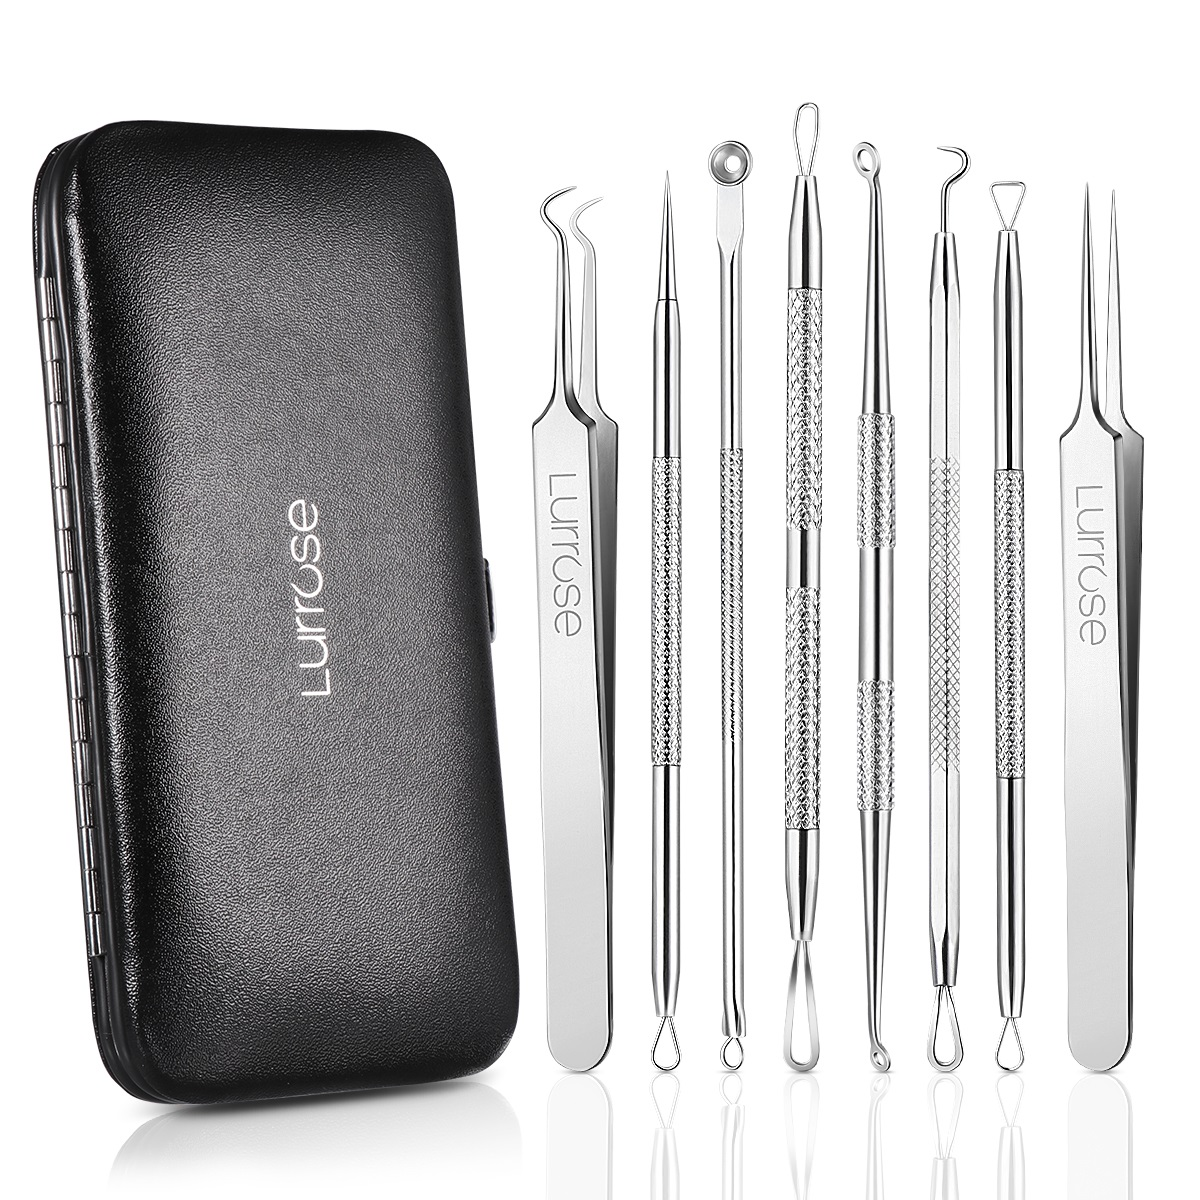 8Pcs Blackhead Remover Tool Kit, Blackhead Tweezers Kit, Acne Extractor Tool, Professional Stainless Pimple Acne Blemish Removal Tools Set with Metal Case